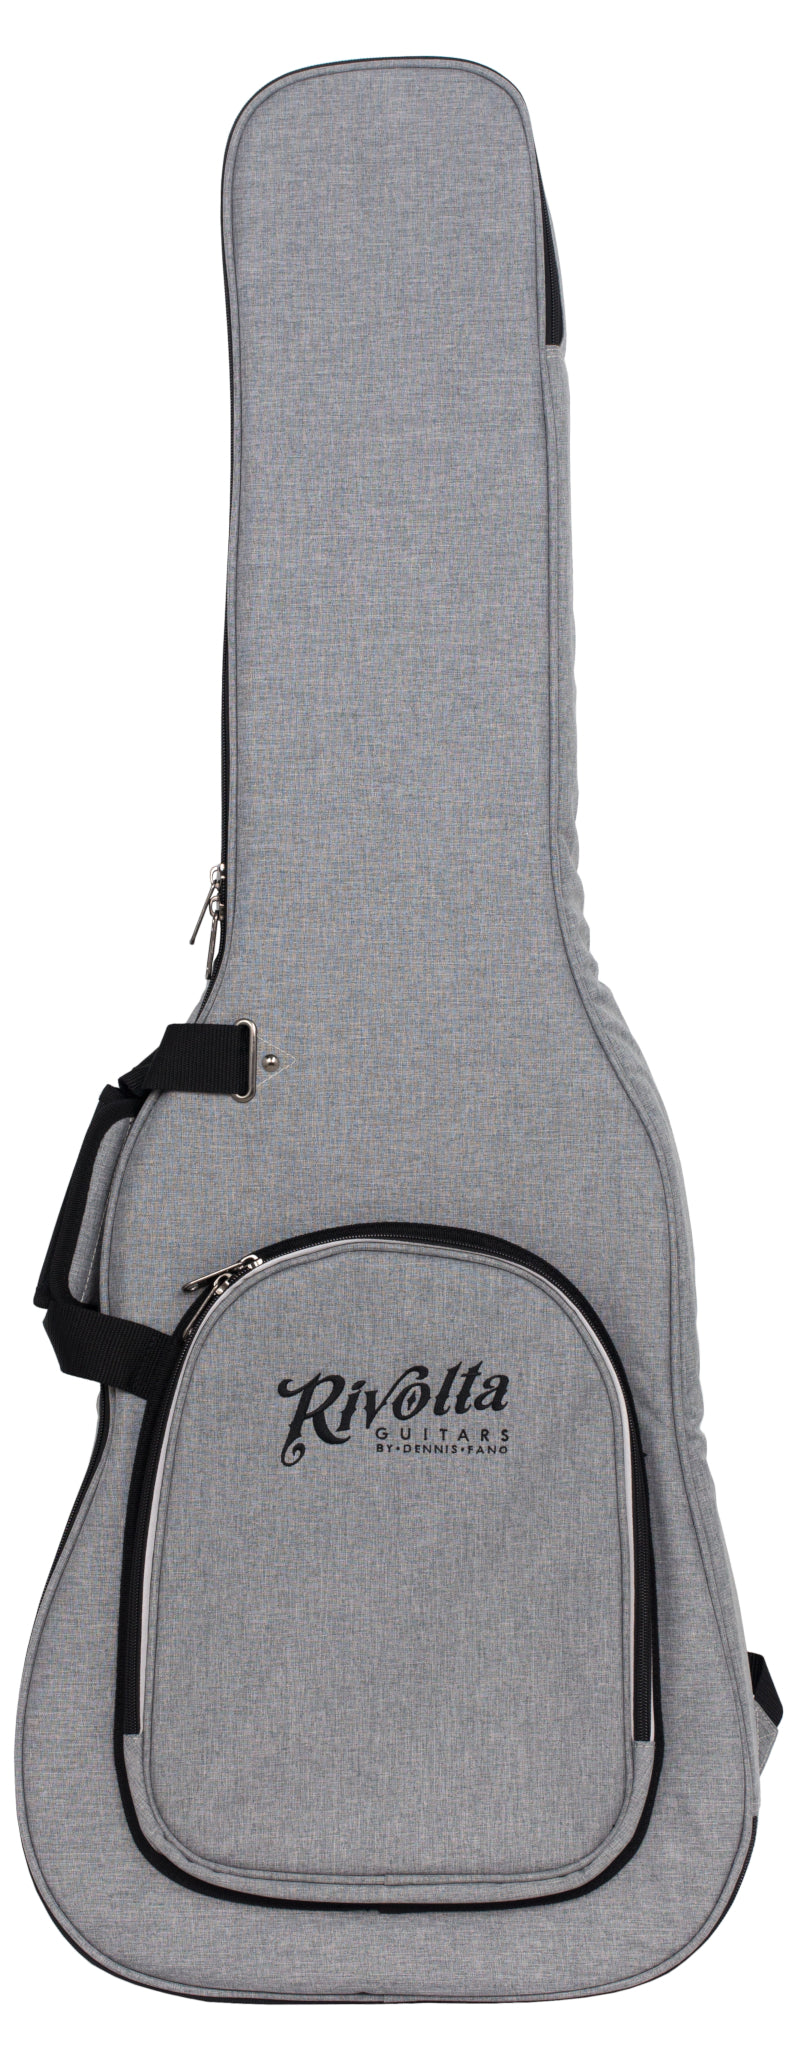 Eastwood Guitars Rivolta Premium Gig Bag Standard Guitar Full Front